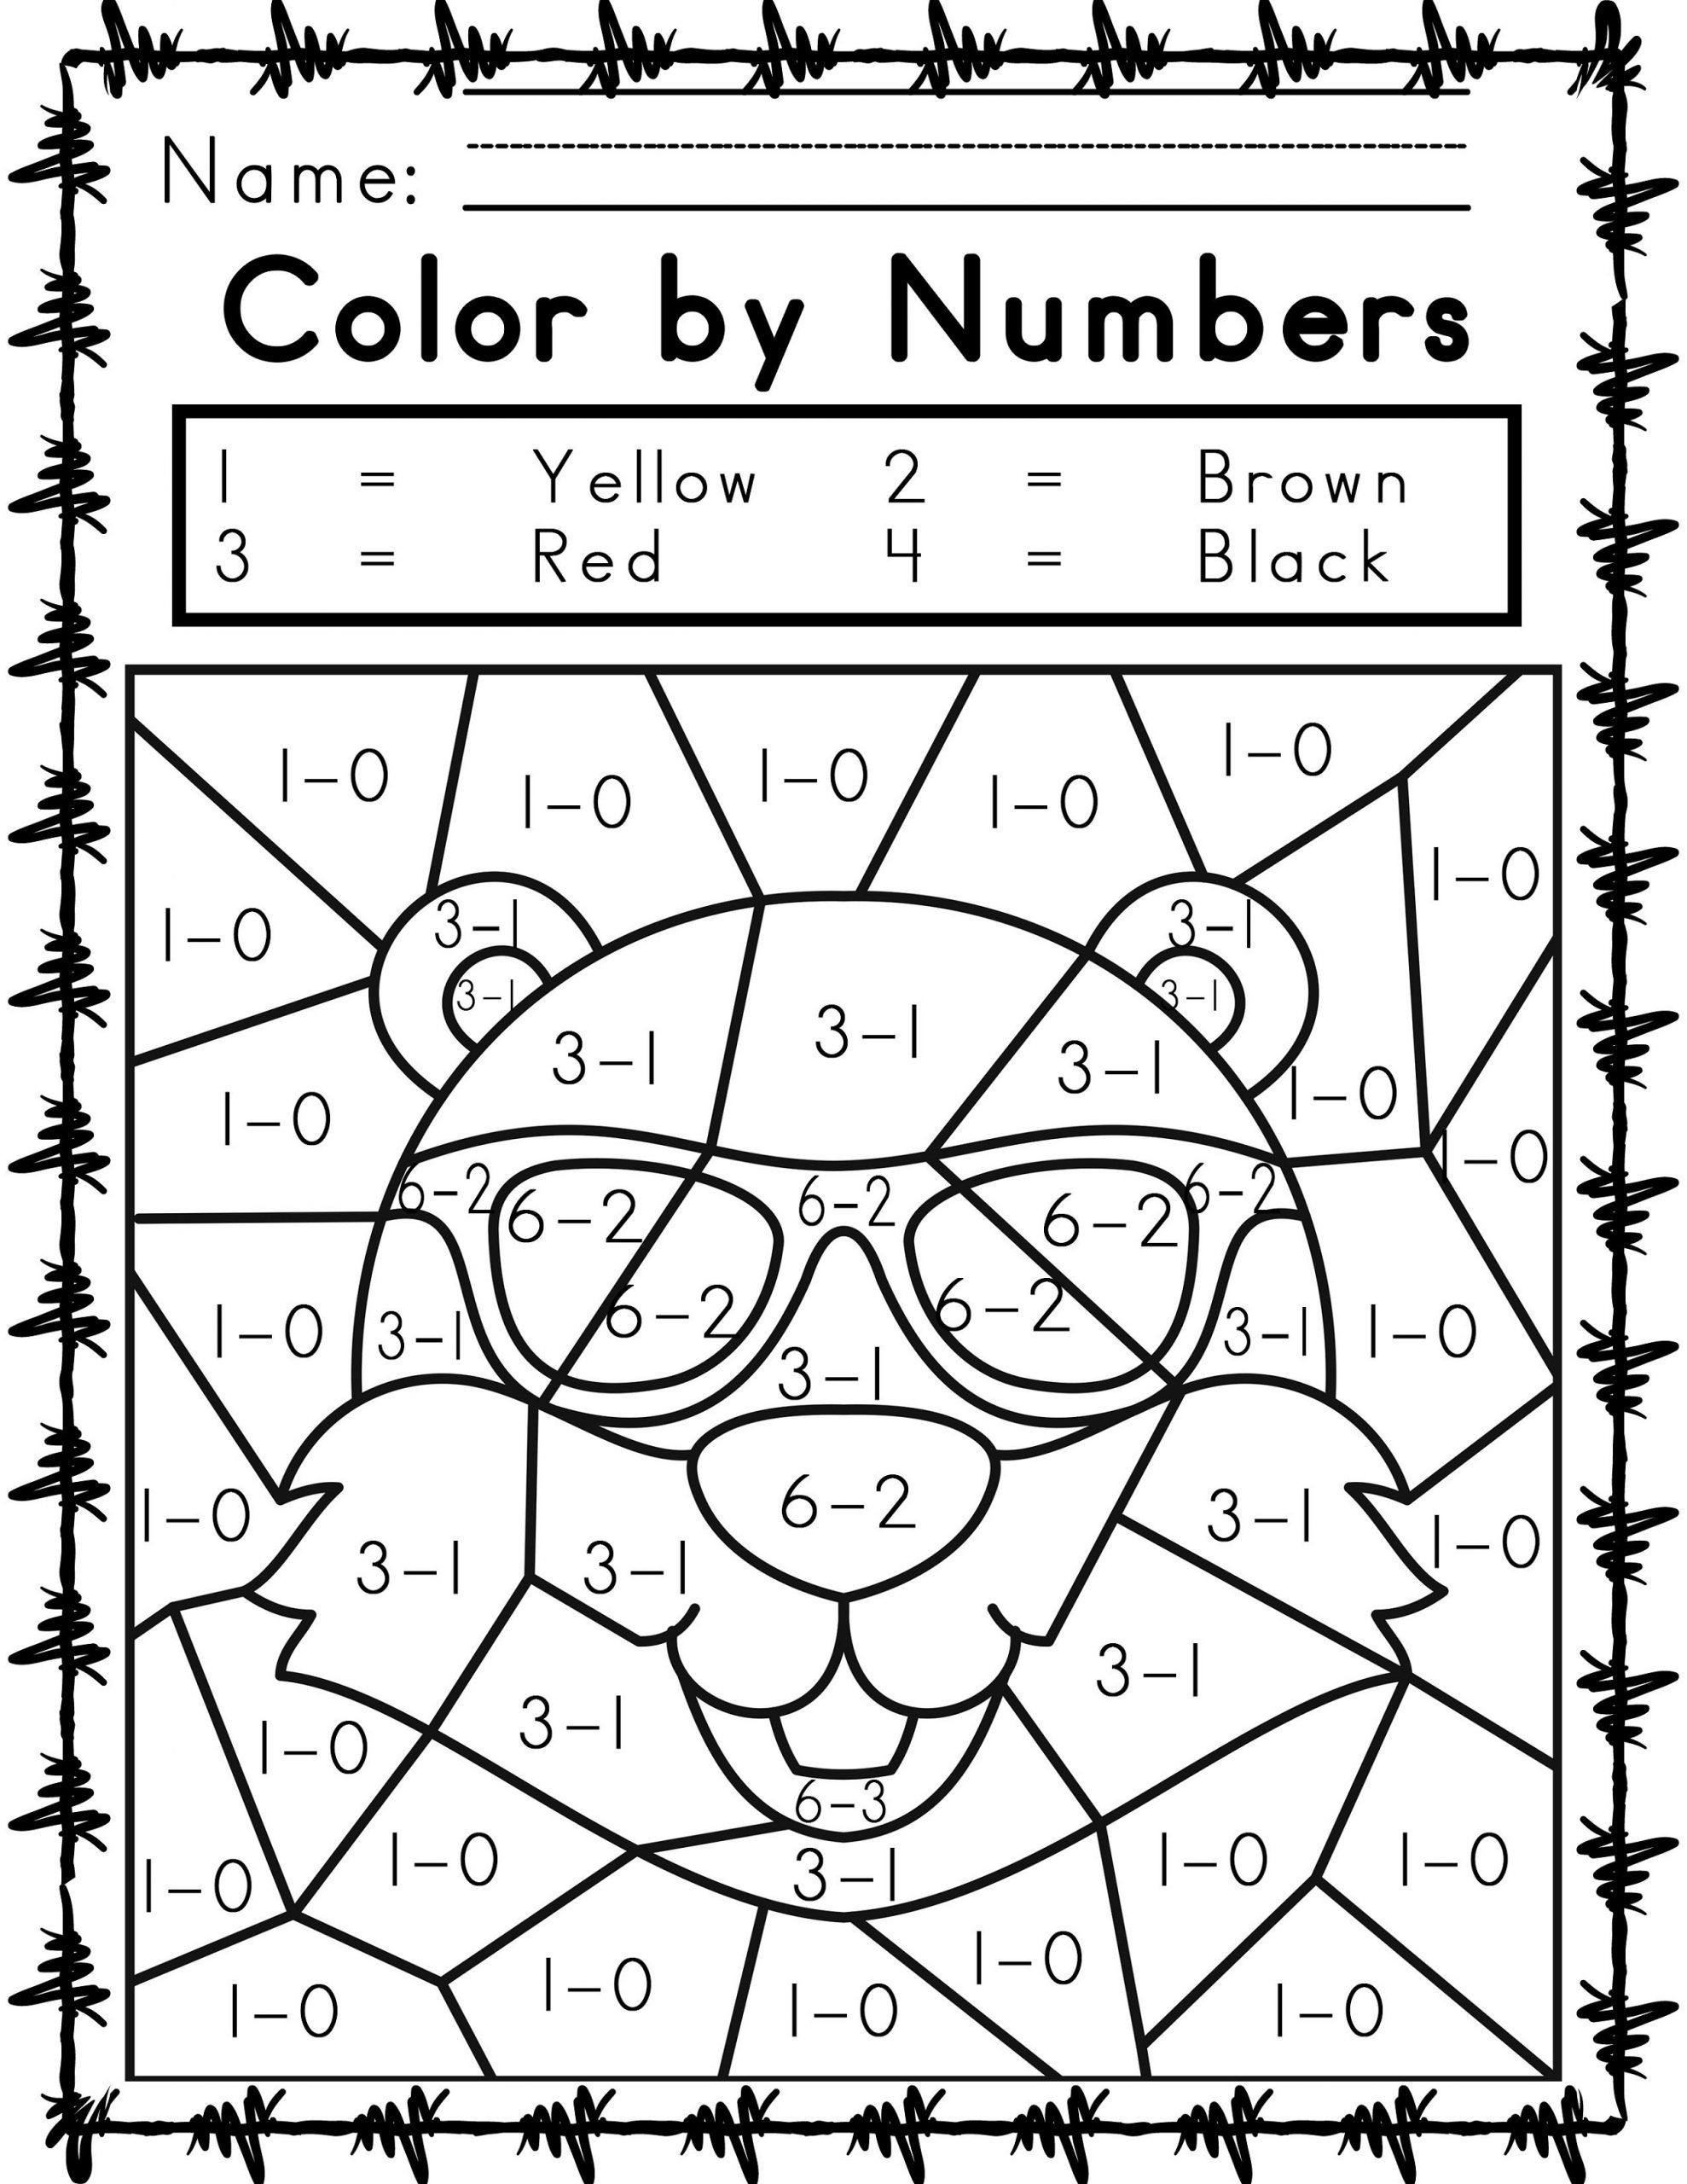 Printable Easy And Hard Color By Number Games 101 Coloring